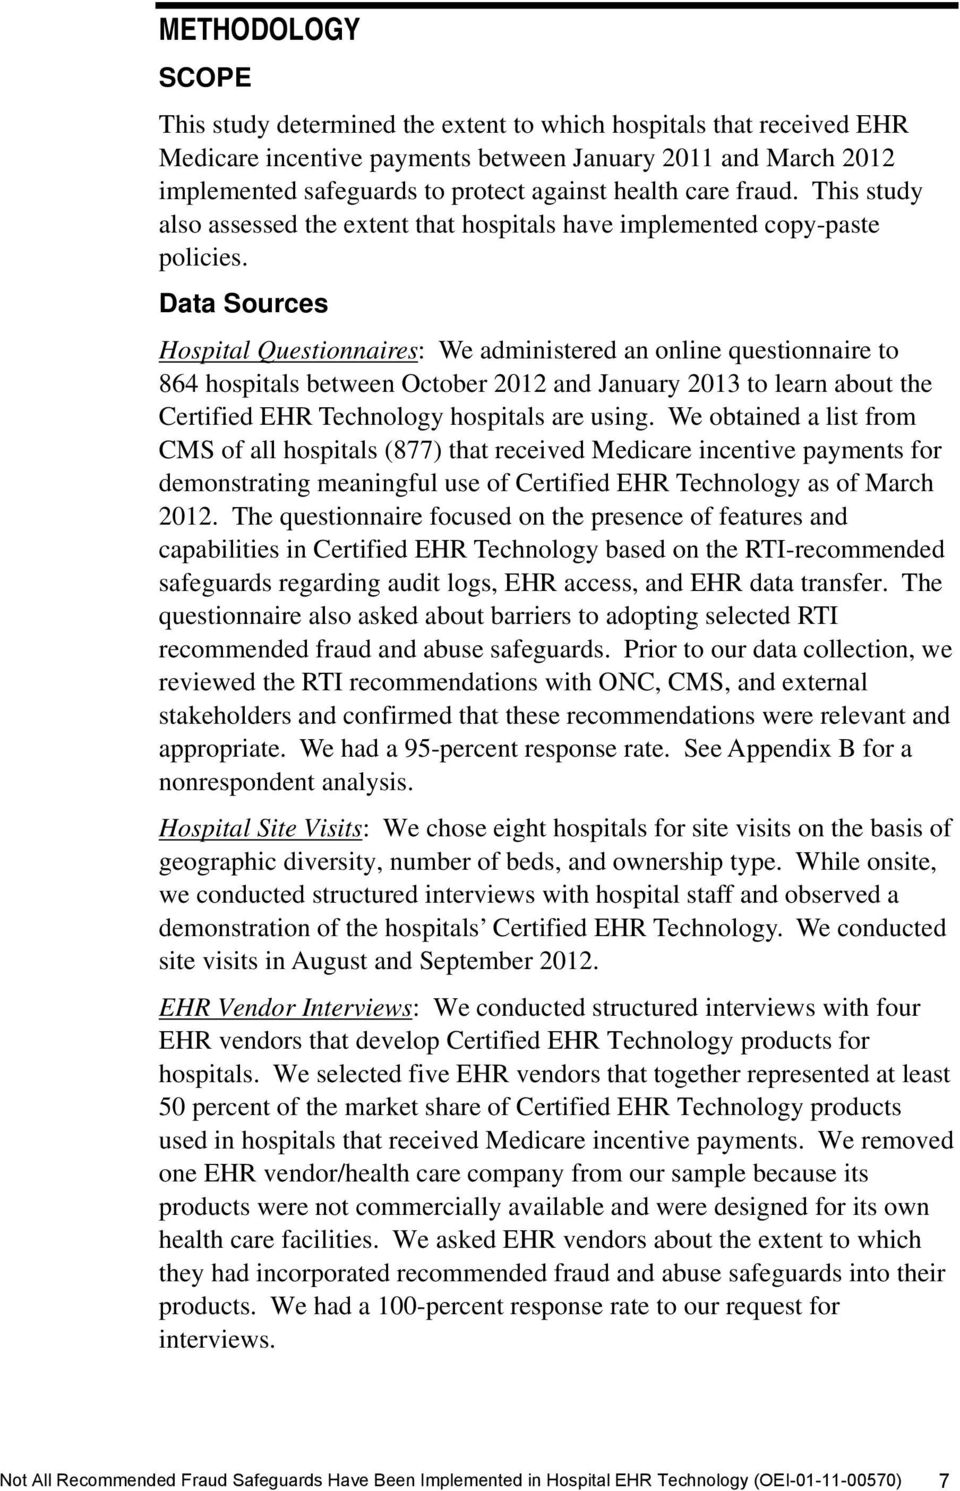 Data Sources Hospital Questionnaires: We administered an online questionnaire to 864 hospitals between October 2012 and January 2013 to learn about the Certified EHR Technology hospitals are using.